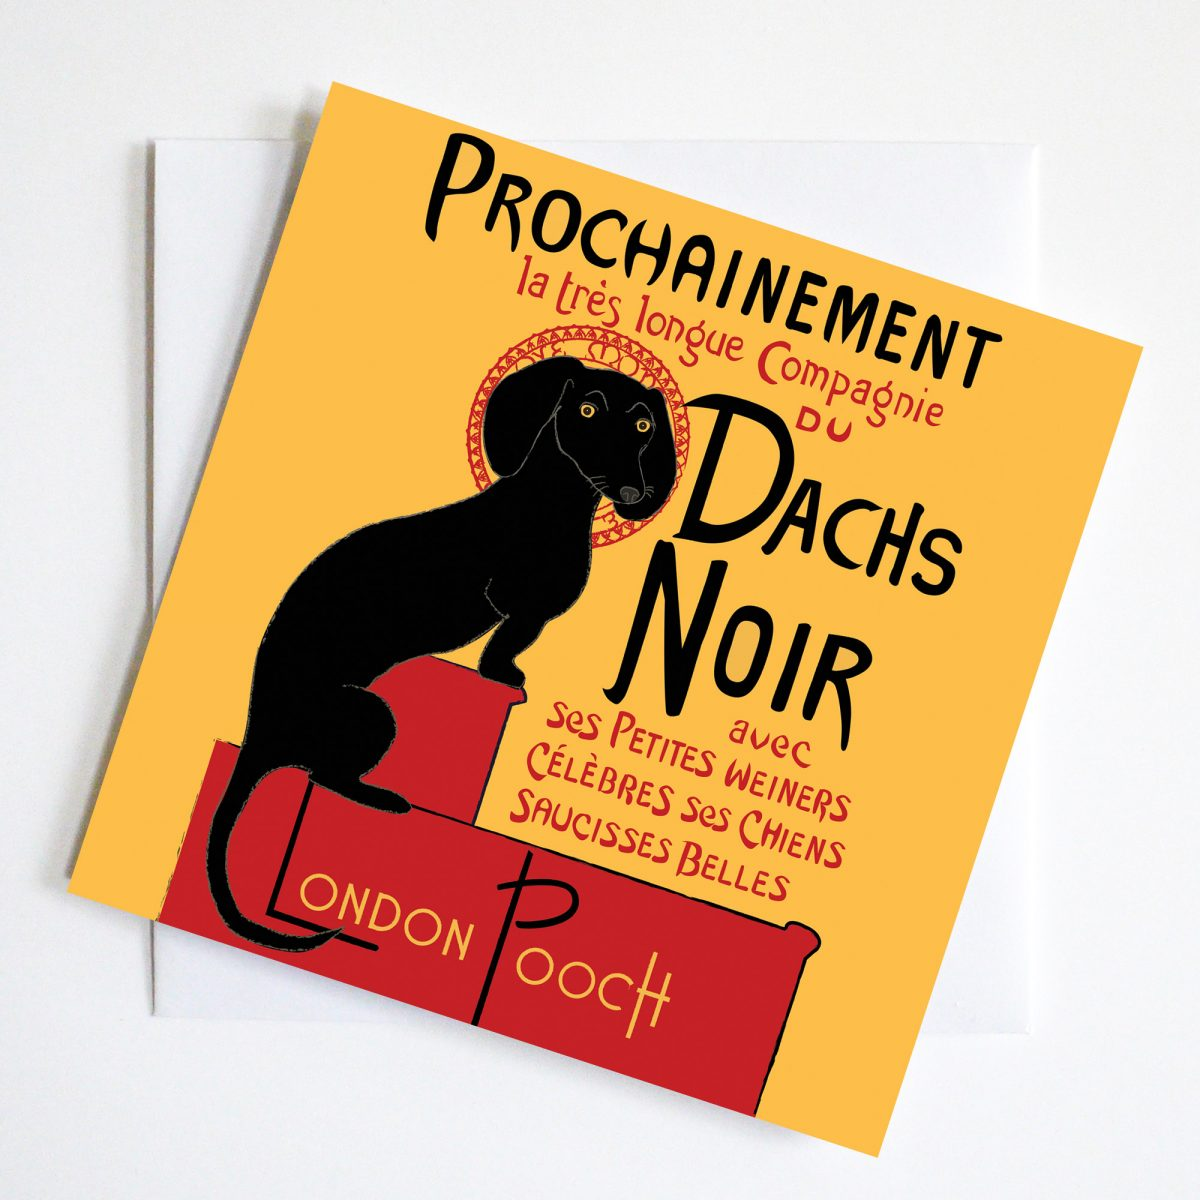 Iconic Poster image Chat Noir seen through the eyes of a dachshund as Dachs Noir.